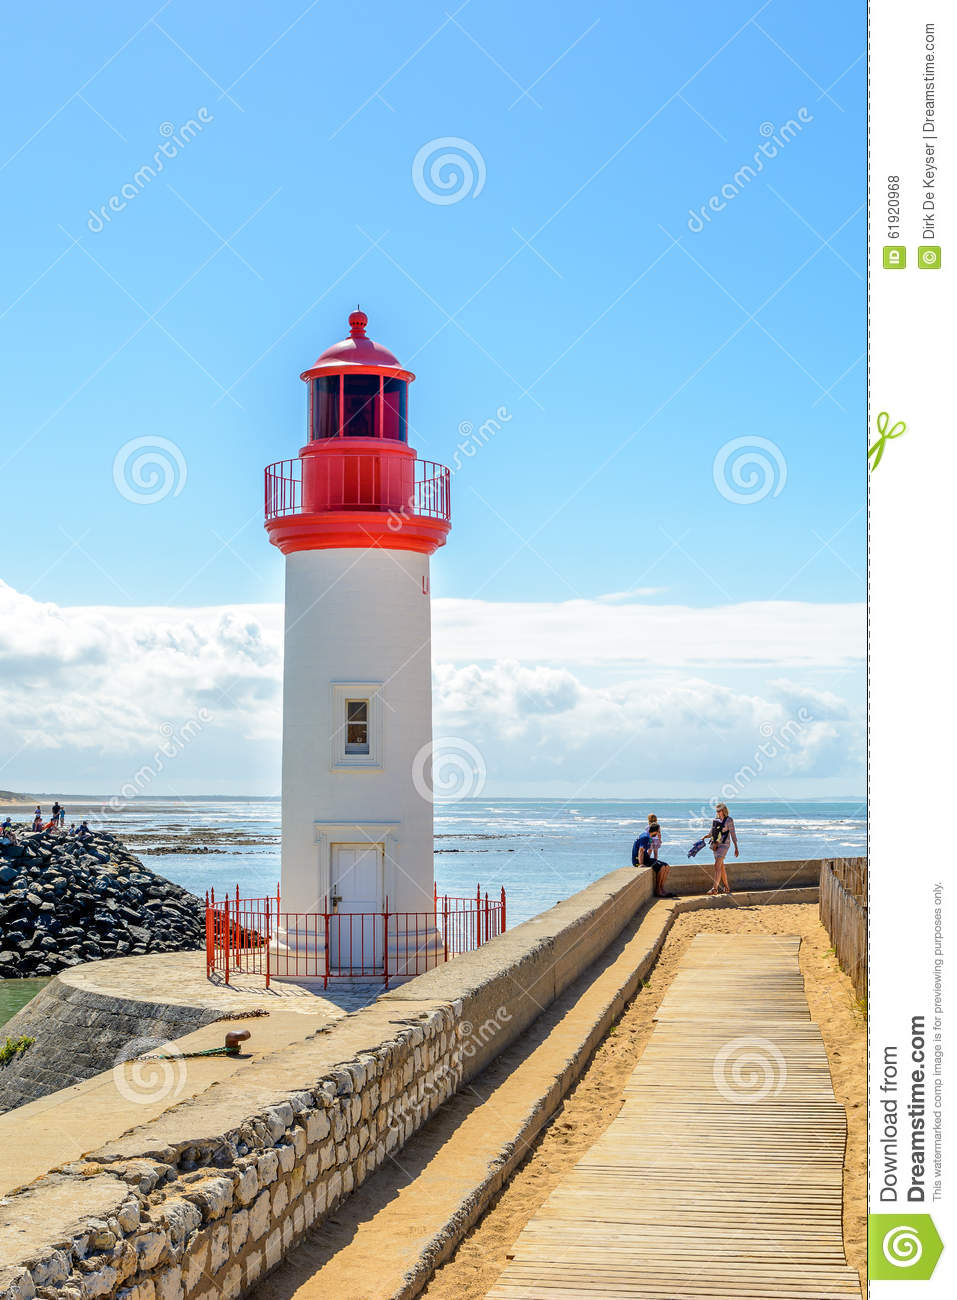 Lighthouse in fishing port La cotiniere, France